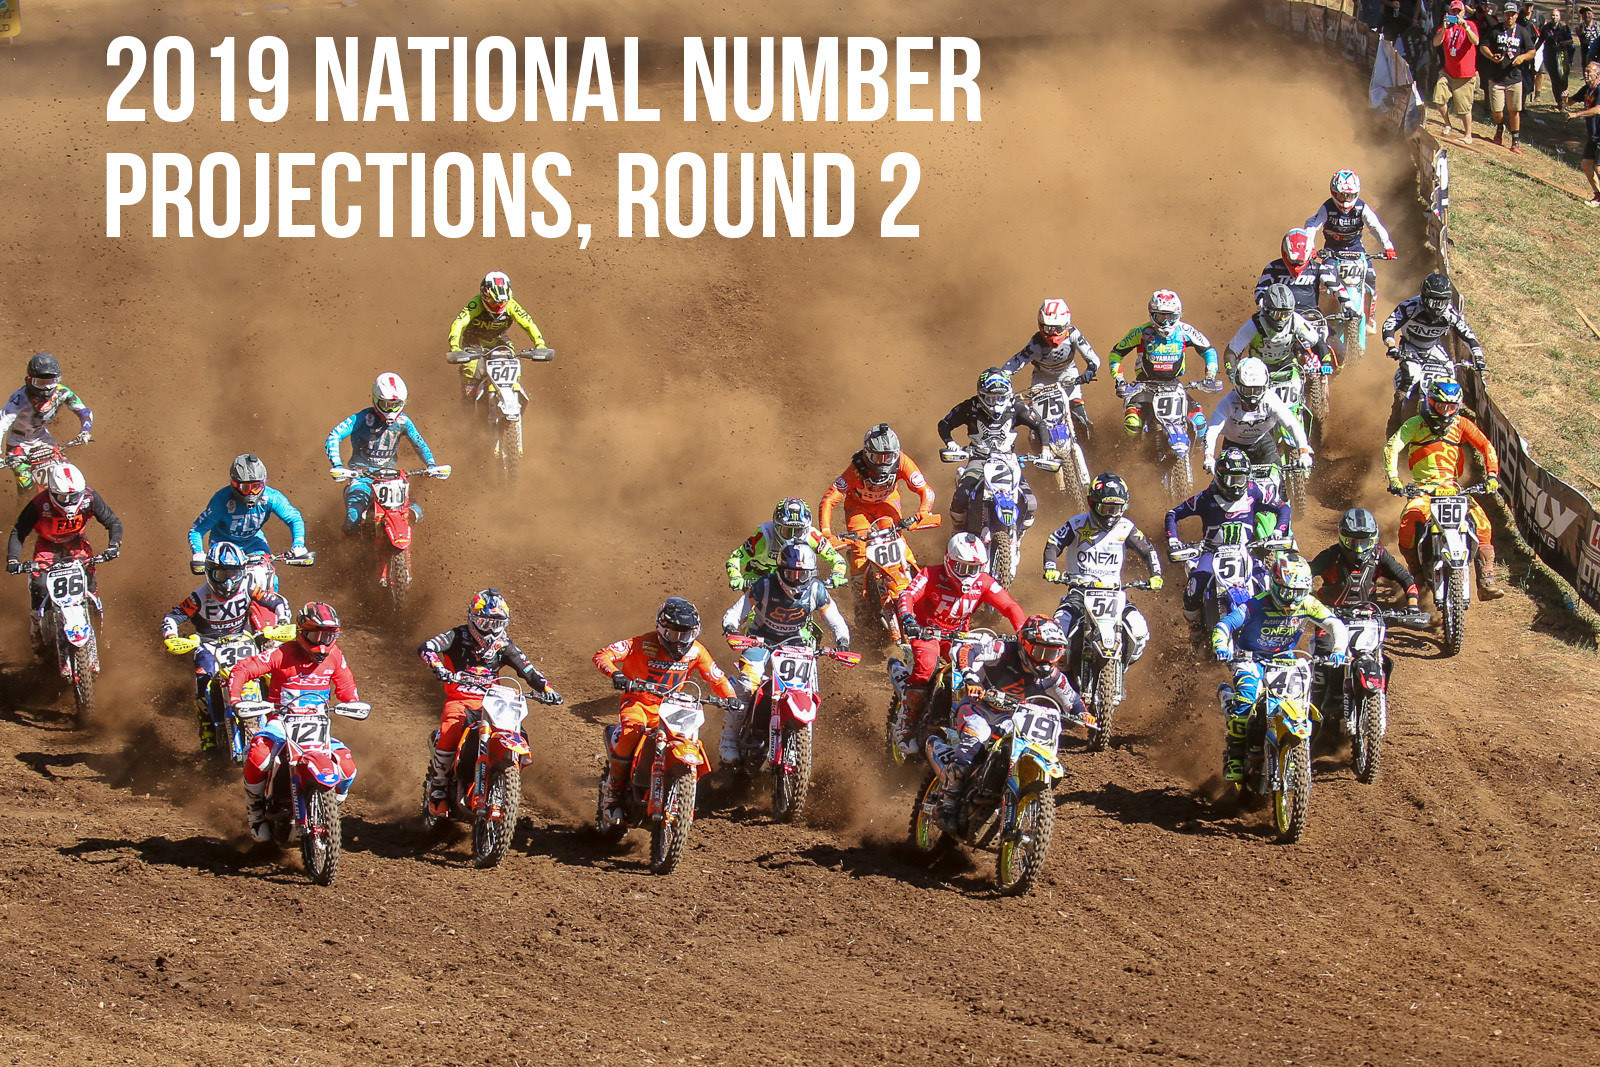 2019 AMA National Number Projections, Round 2